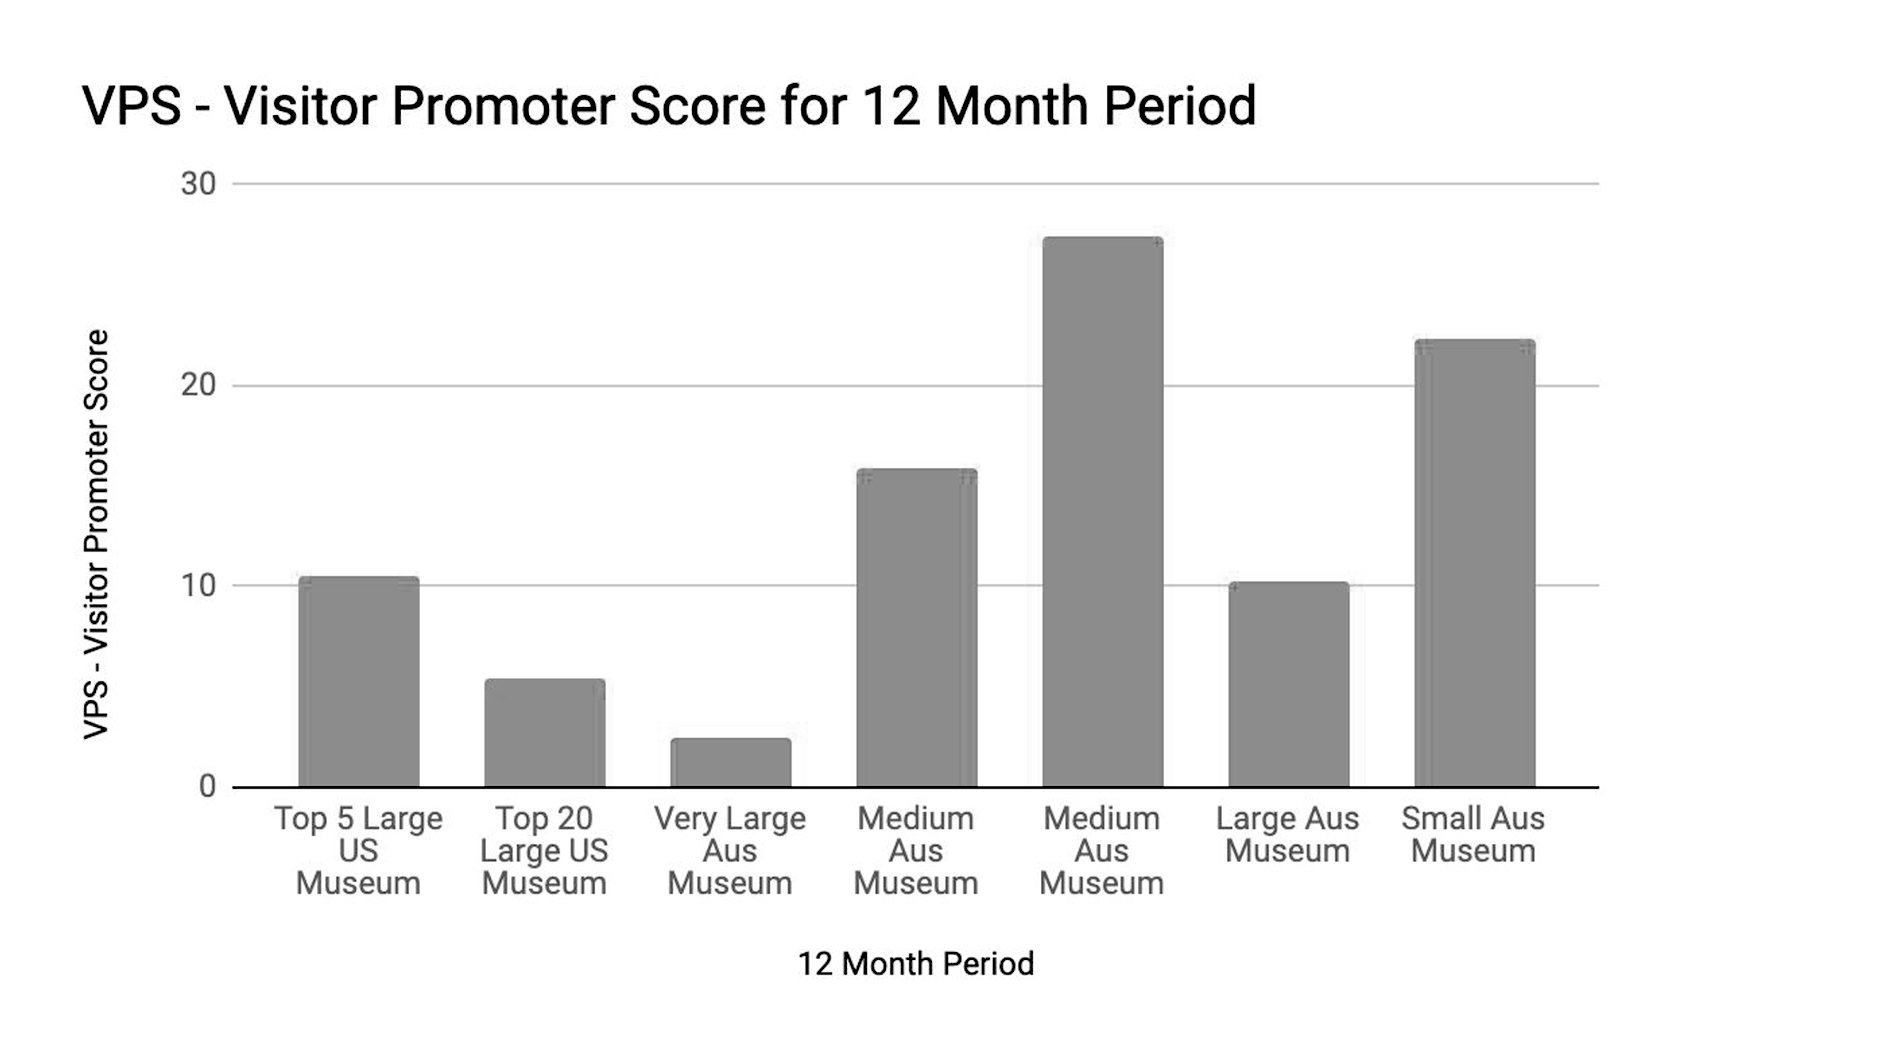 Figure 4 Sample of visitor promoter scores across types of museums